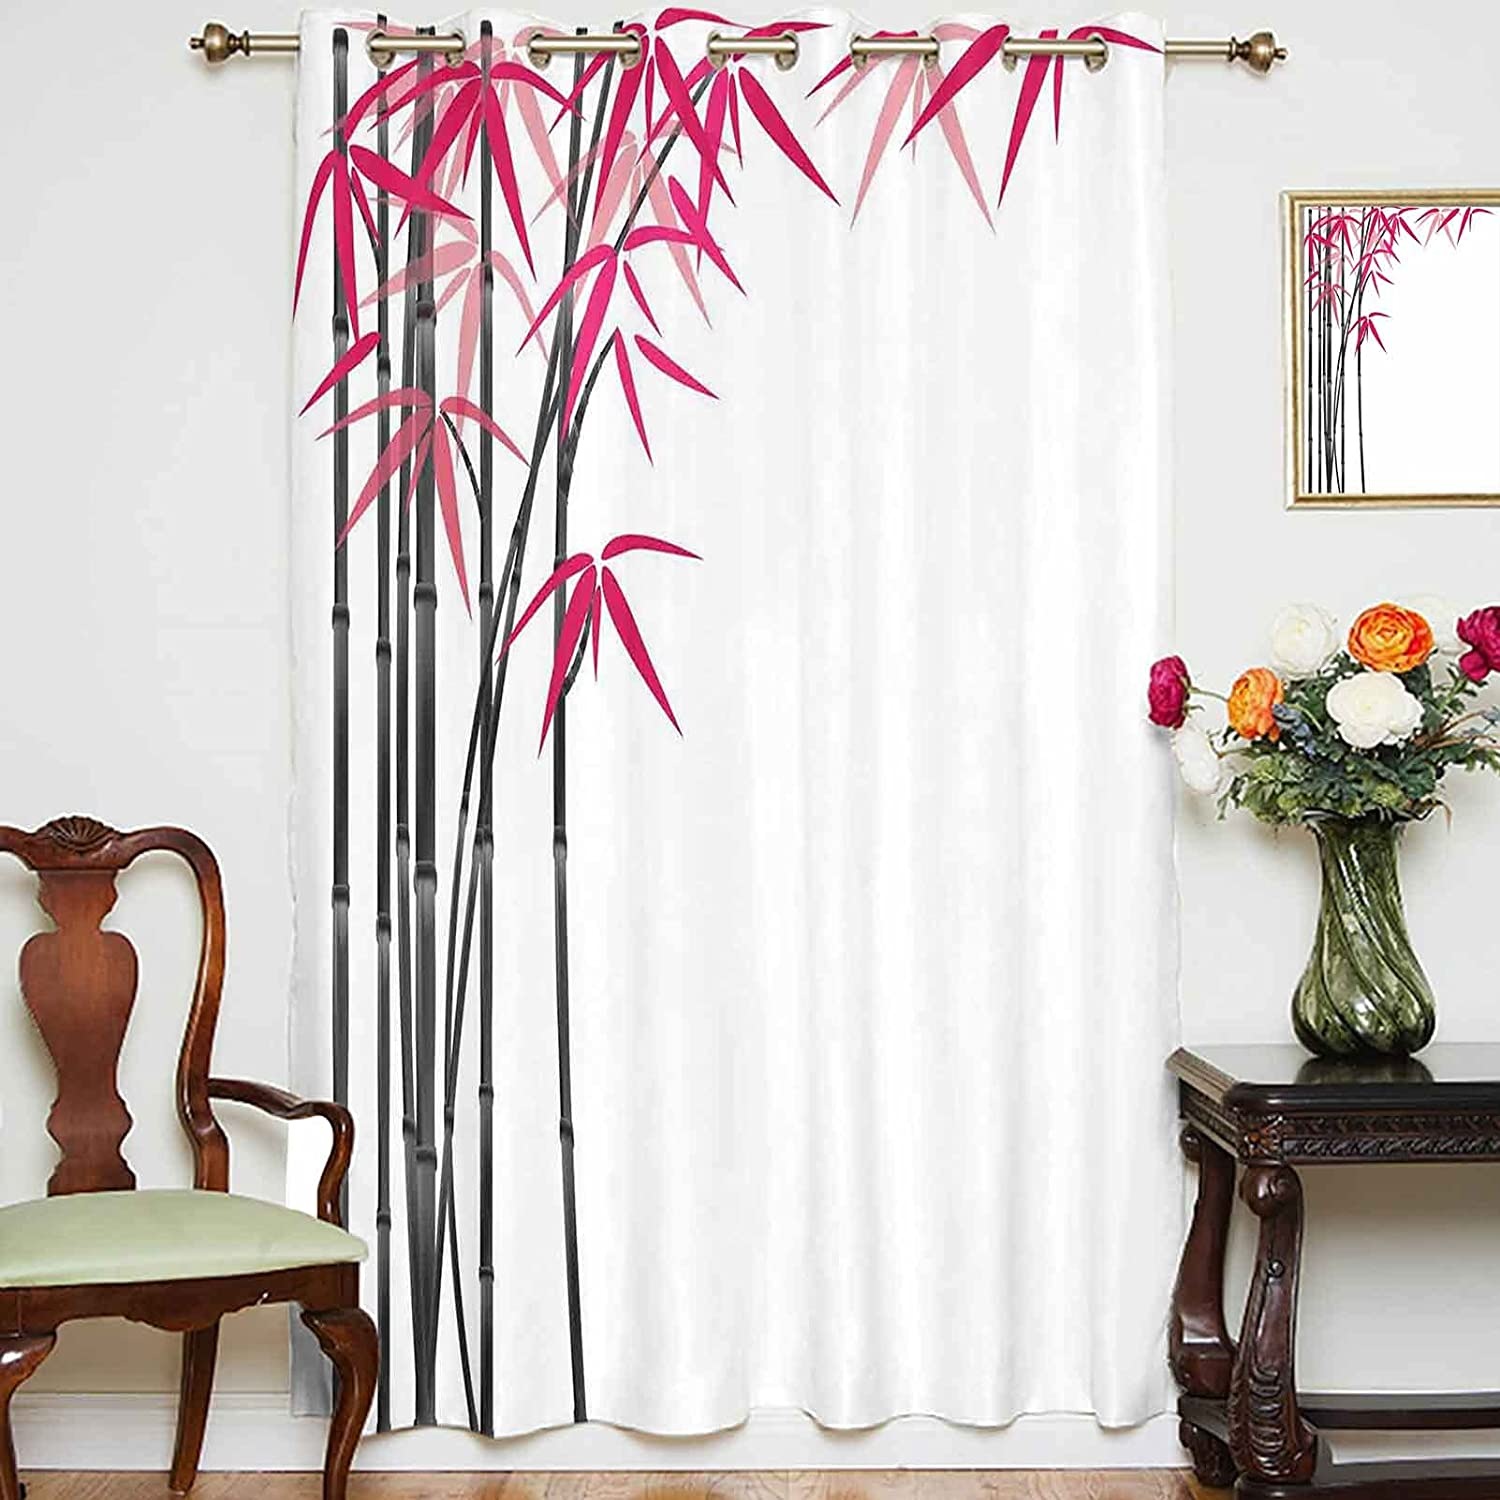 oobon Blackout Curtains Panels Bamboo Colorful Tree Finally resale start with Leaves Department store